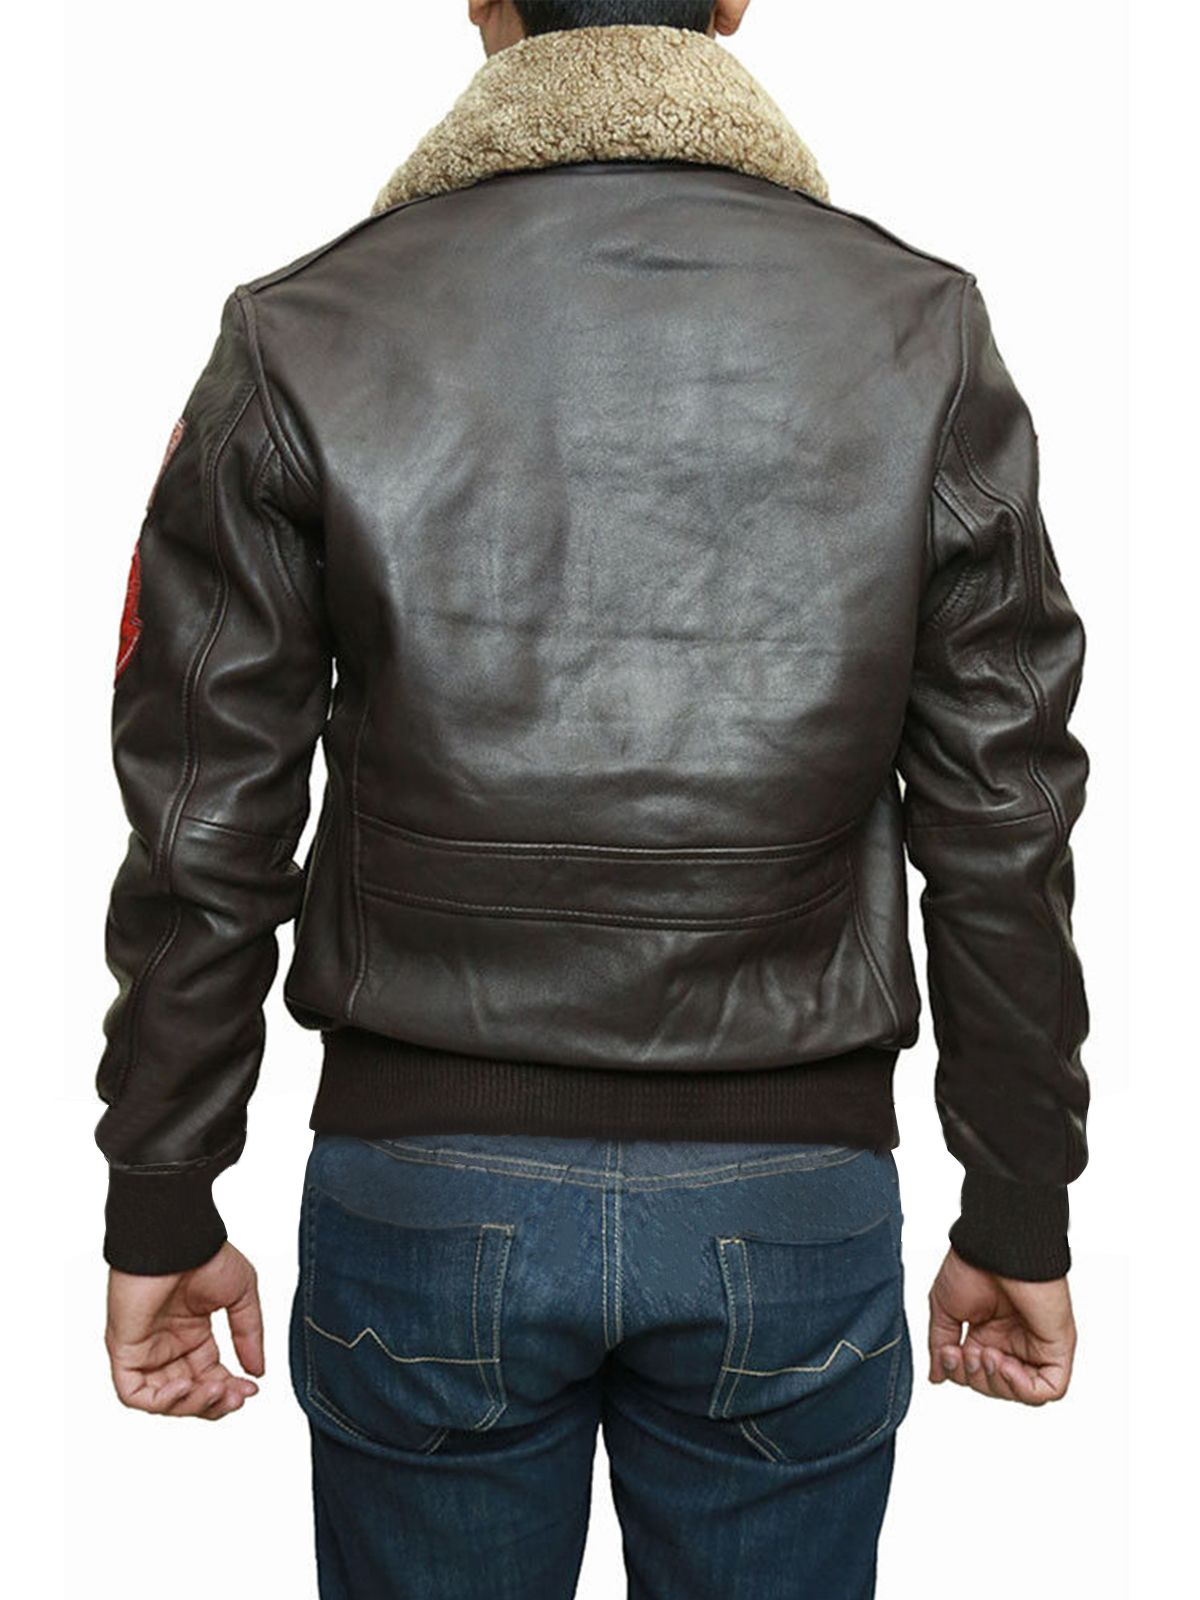 This trending Men B3 bomber brown leather jacket is famous